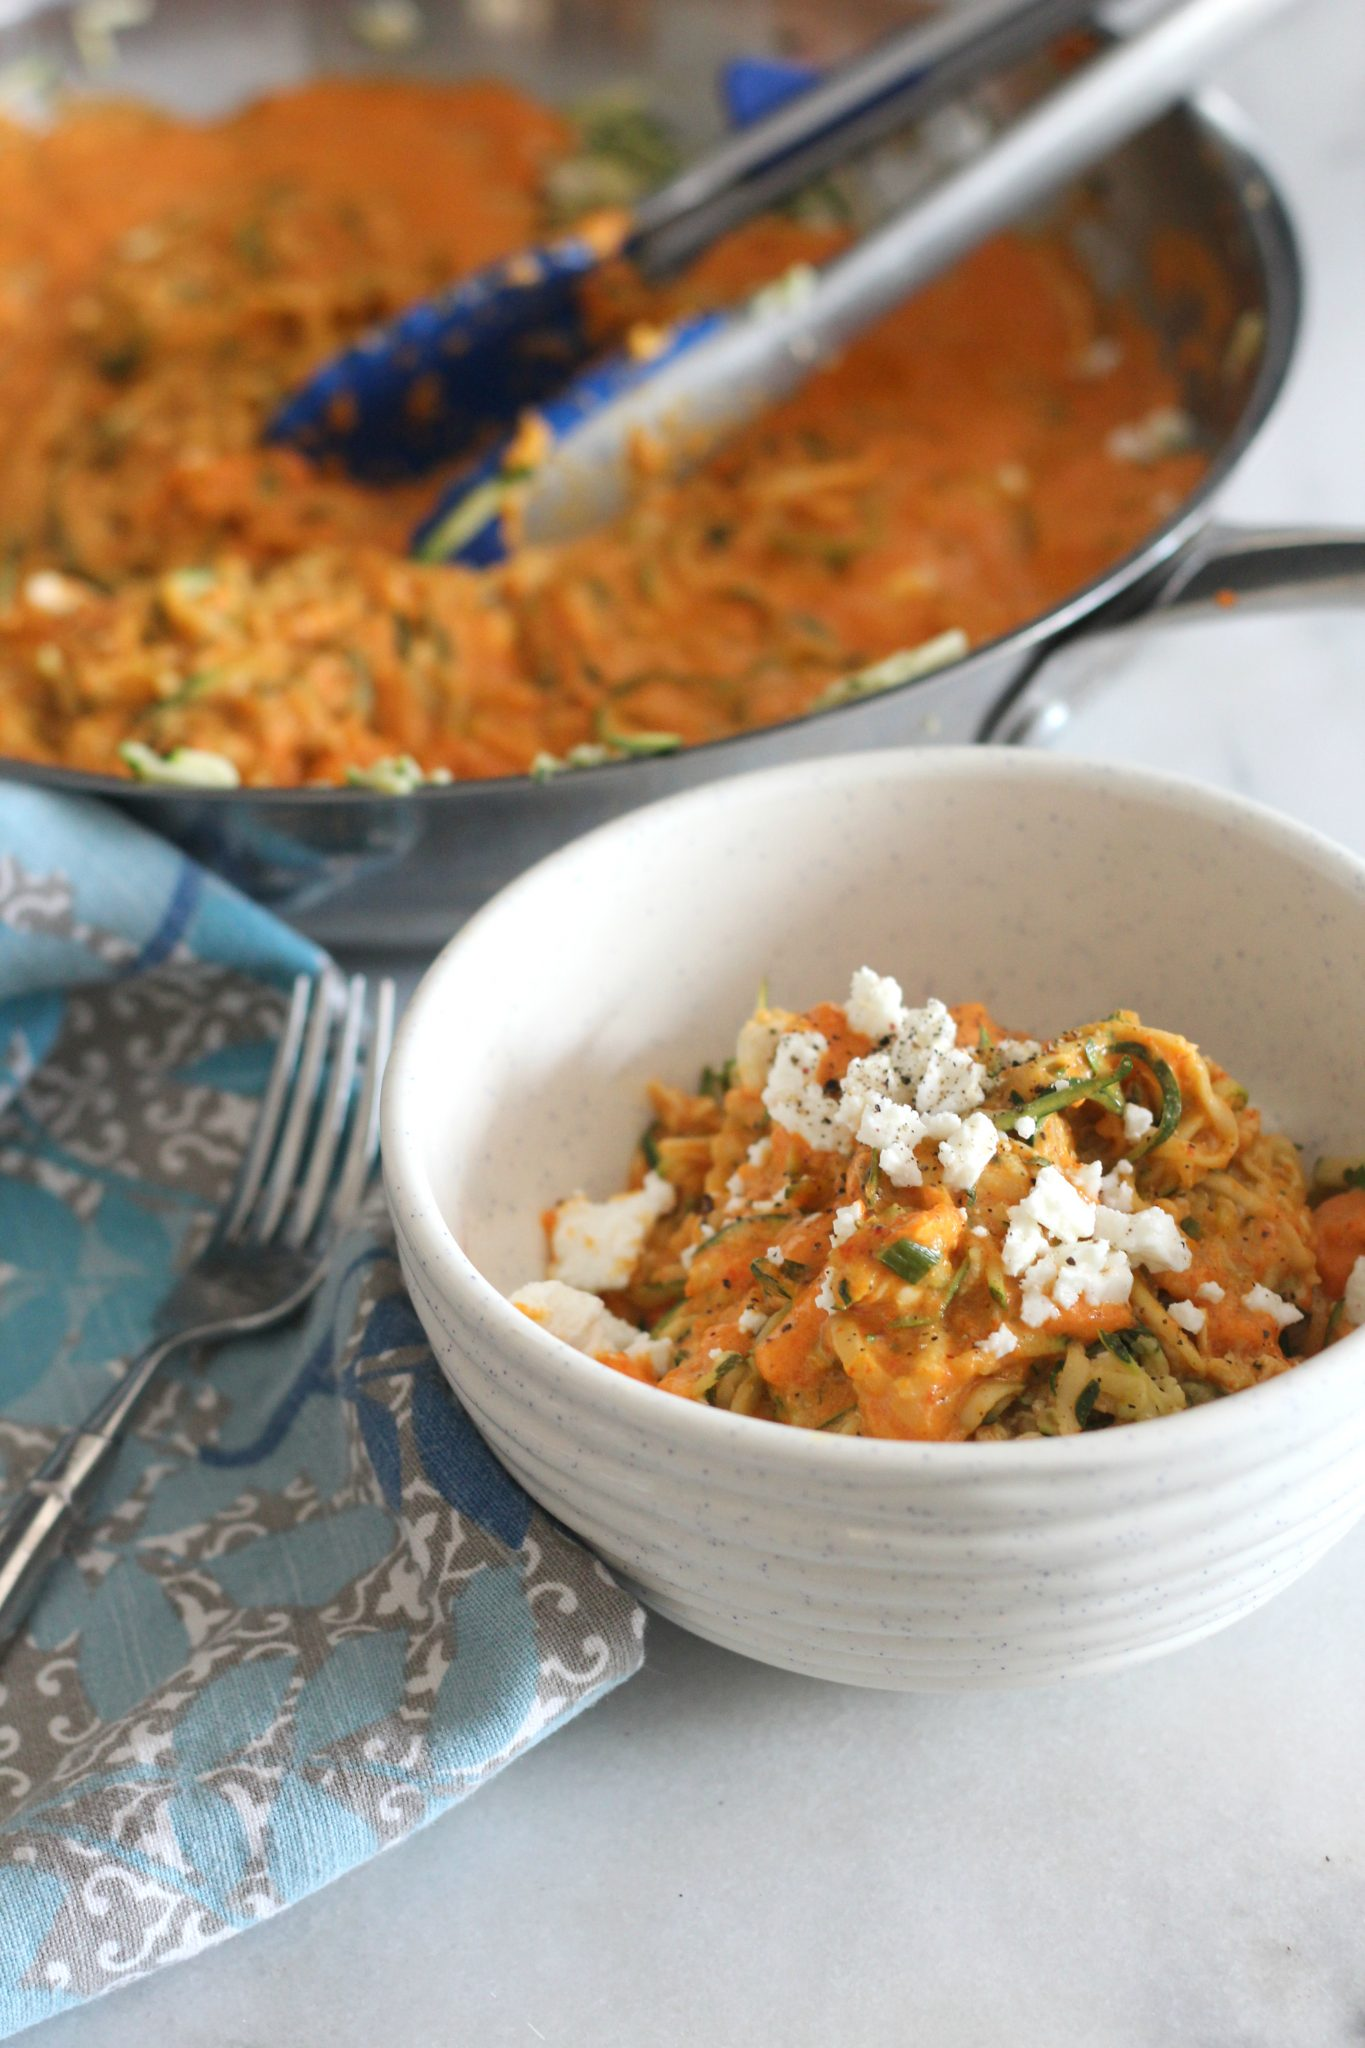 This recipe for zucchini noodles with roasted bell pepper and feta sauce is such a healthy and tasty dinner. Add some chicken to make it a meal or serve it as a low carb side dish.